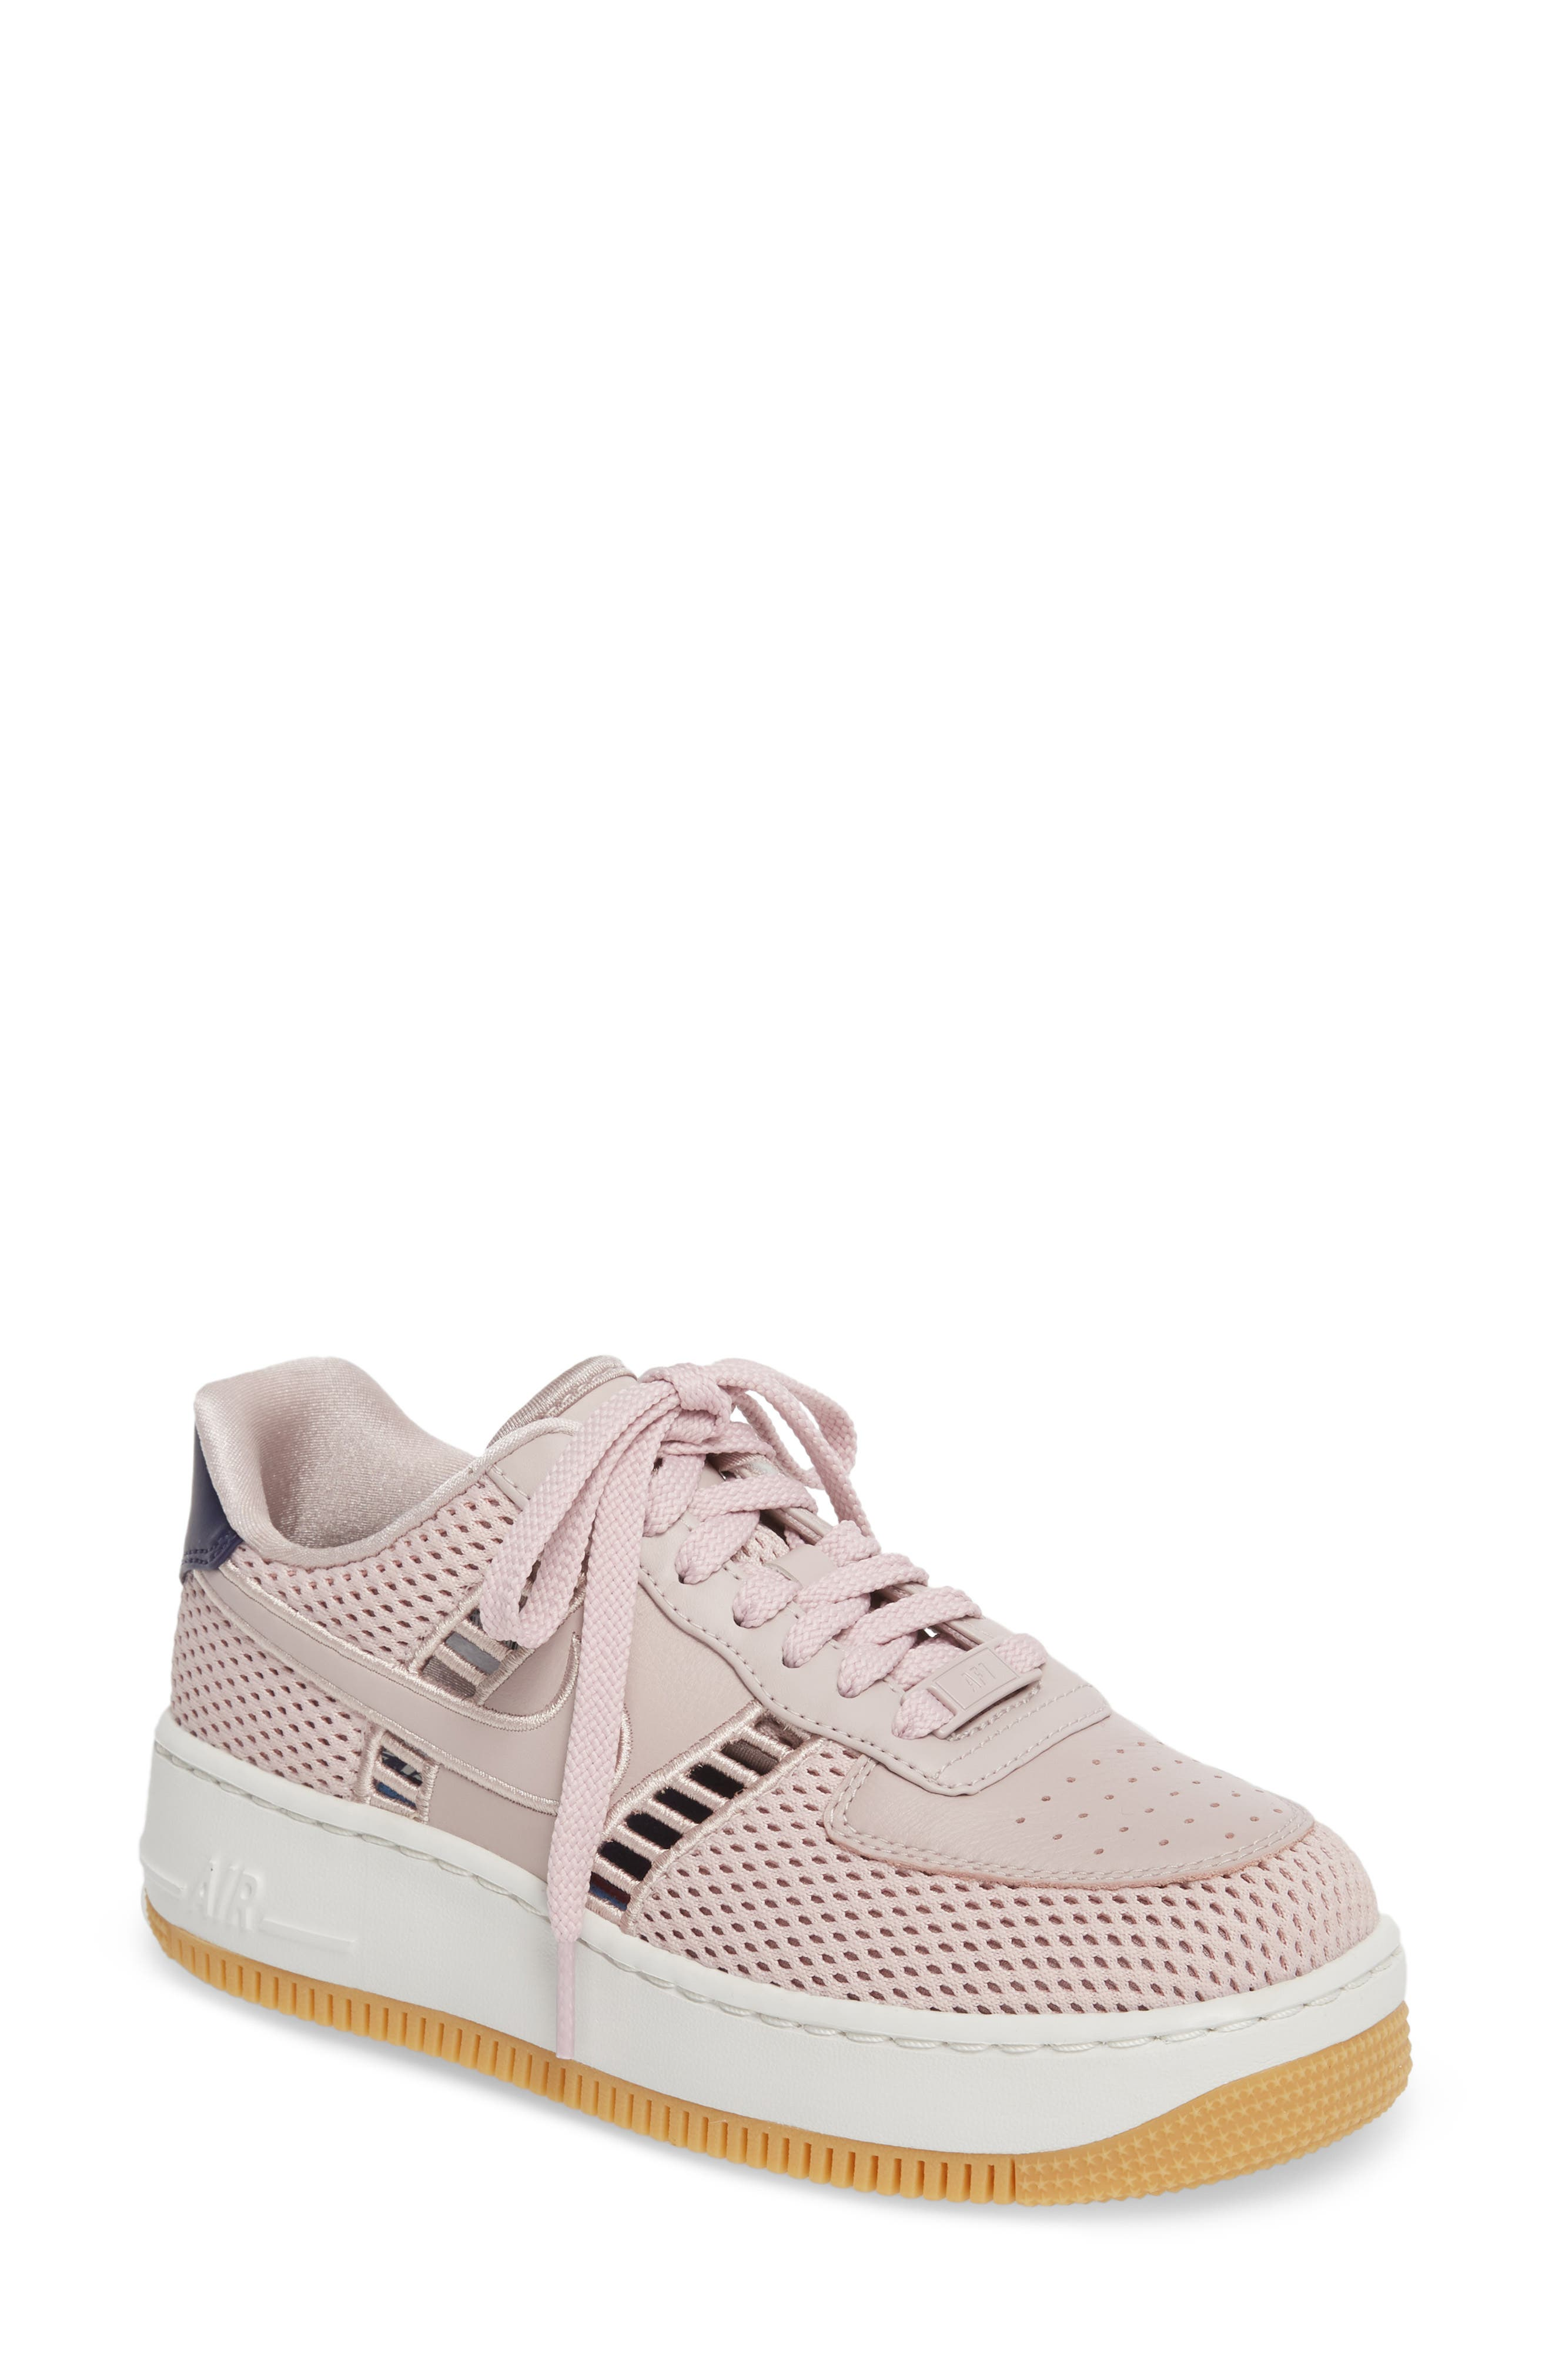 Air Force 1 Upstep SI Mesh Sneaker,                         Main,                         color, Particle Rose/ Summit White